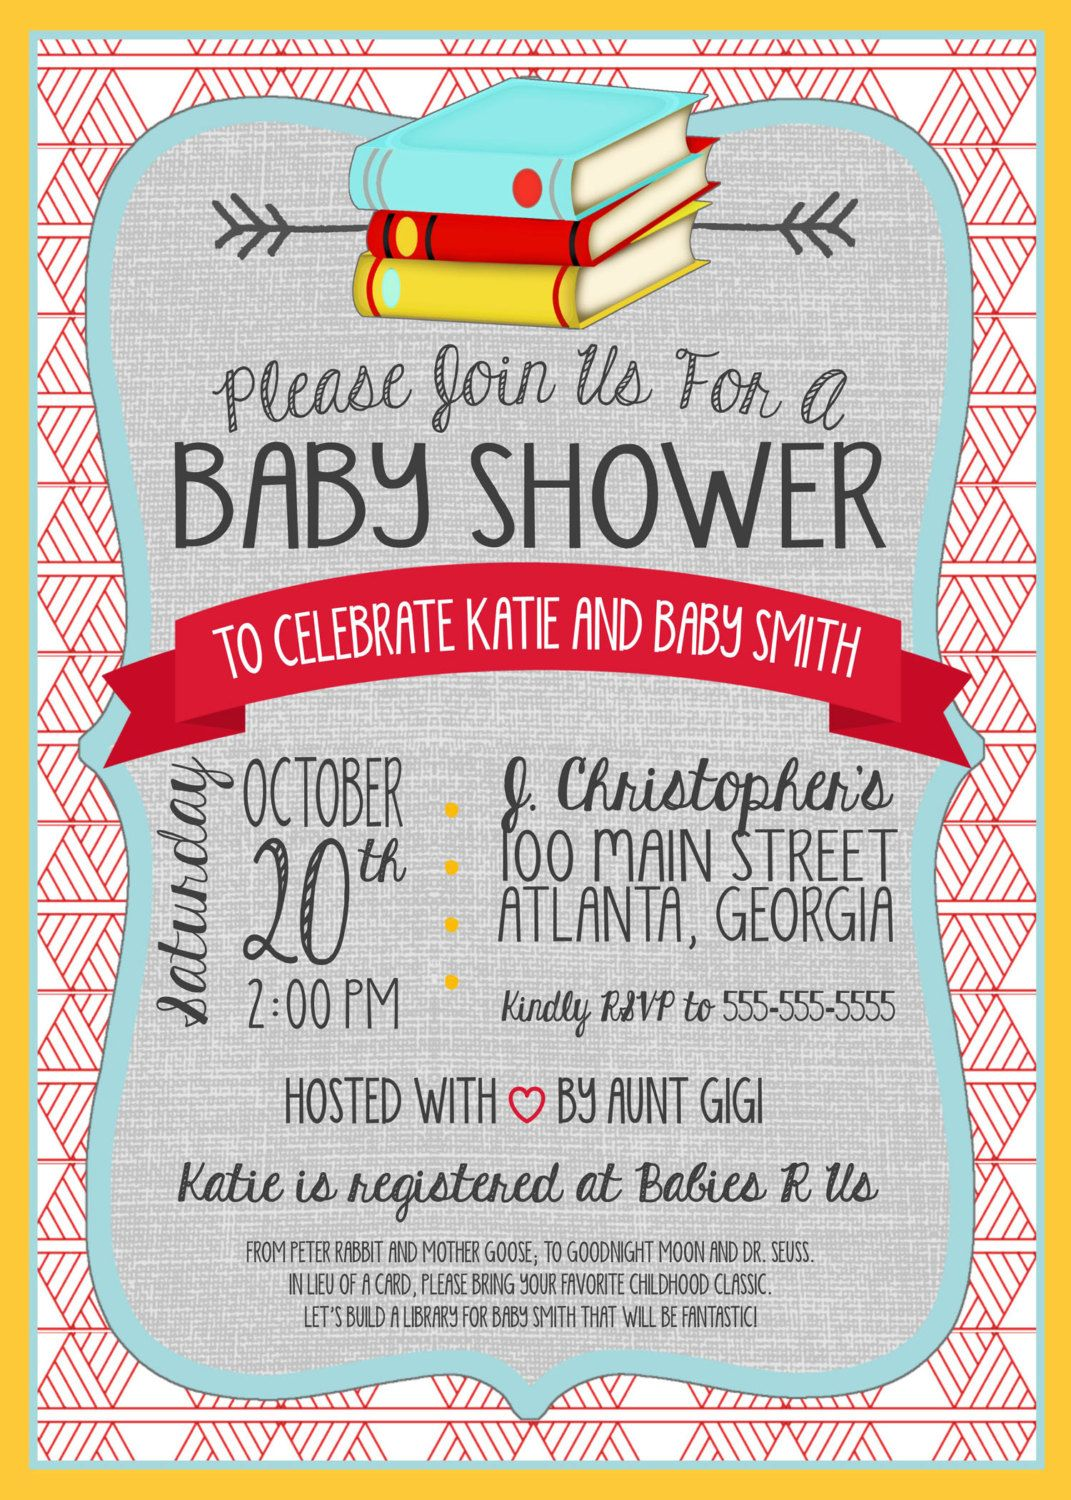 Book Themed Baby Shower Invitation - Classic Book Baby Sprinkle ...